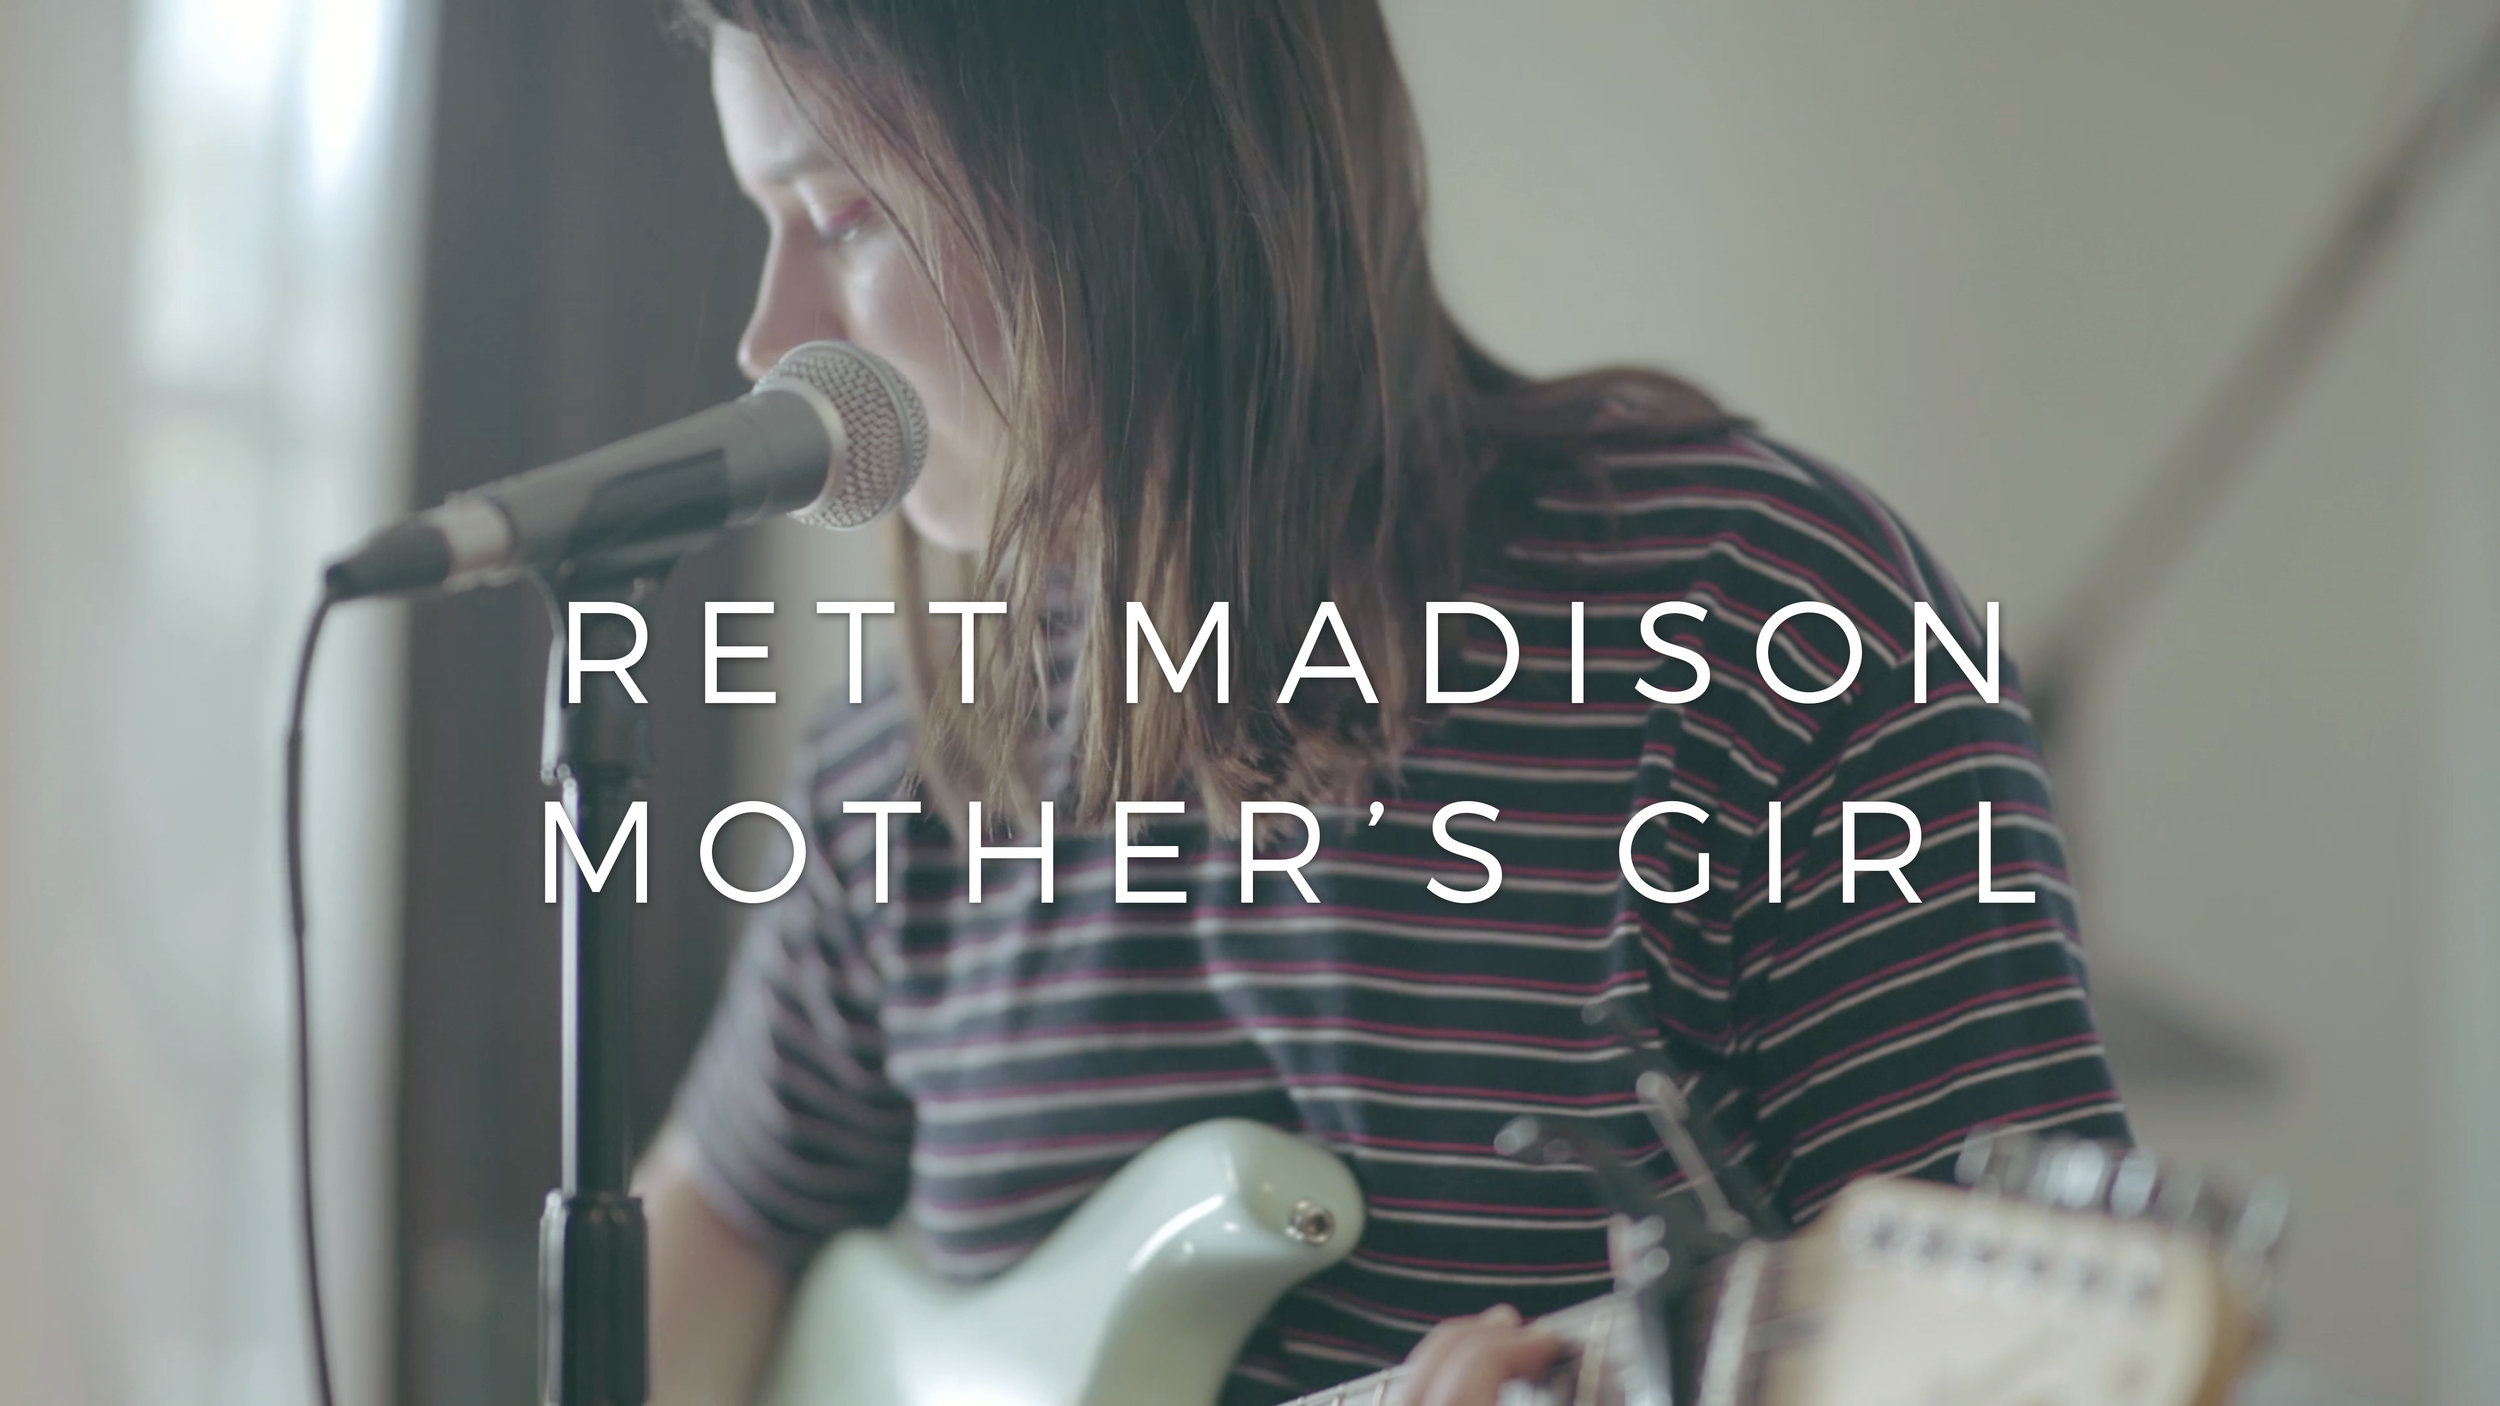 Rett Madison Web Banner.jpg